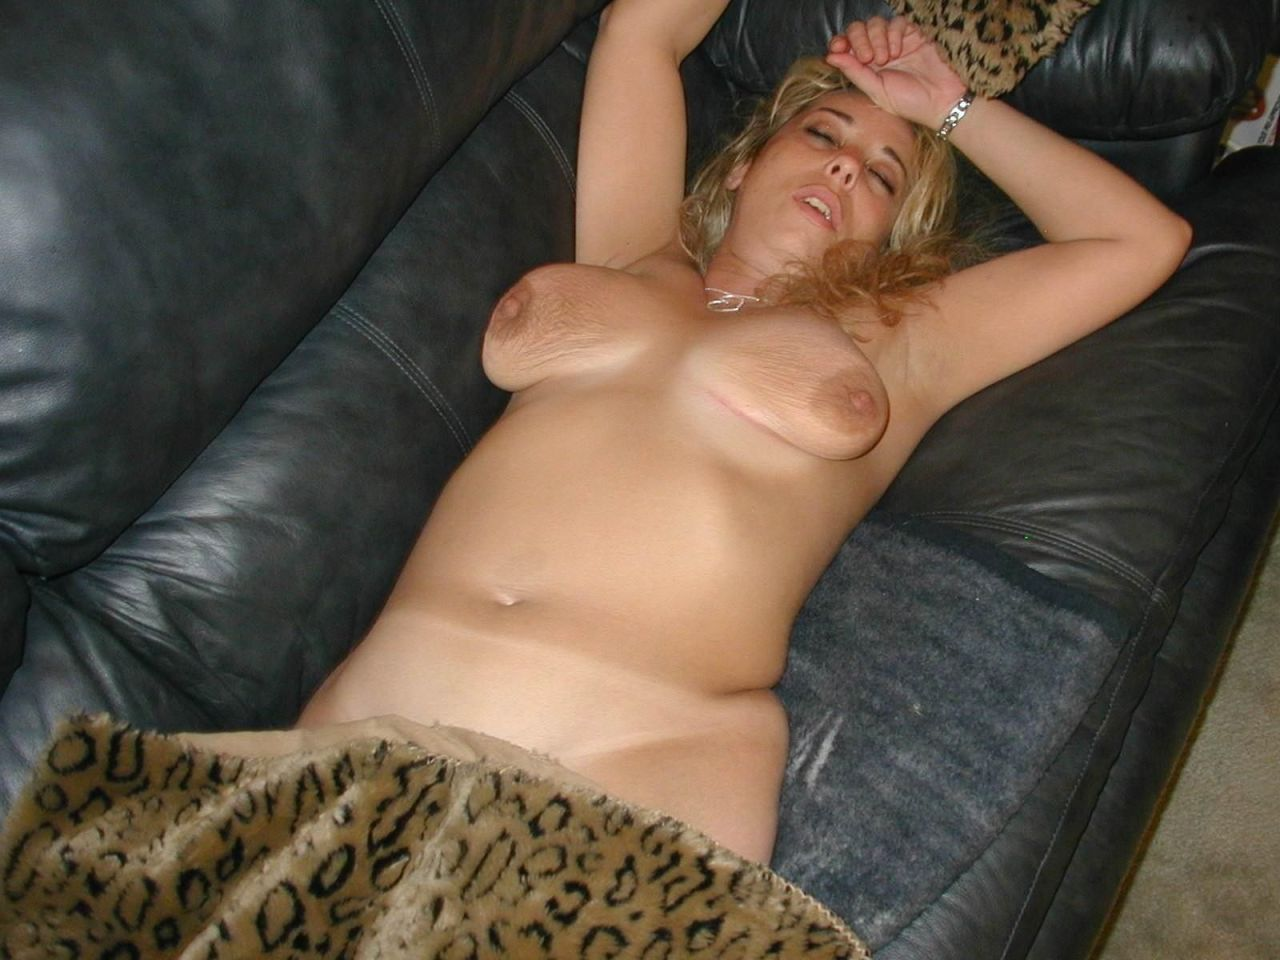 Girl passed out drunk pussy slip